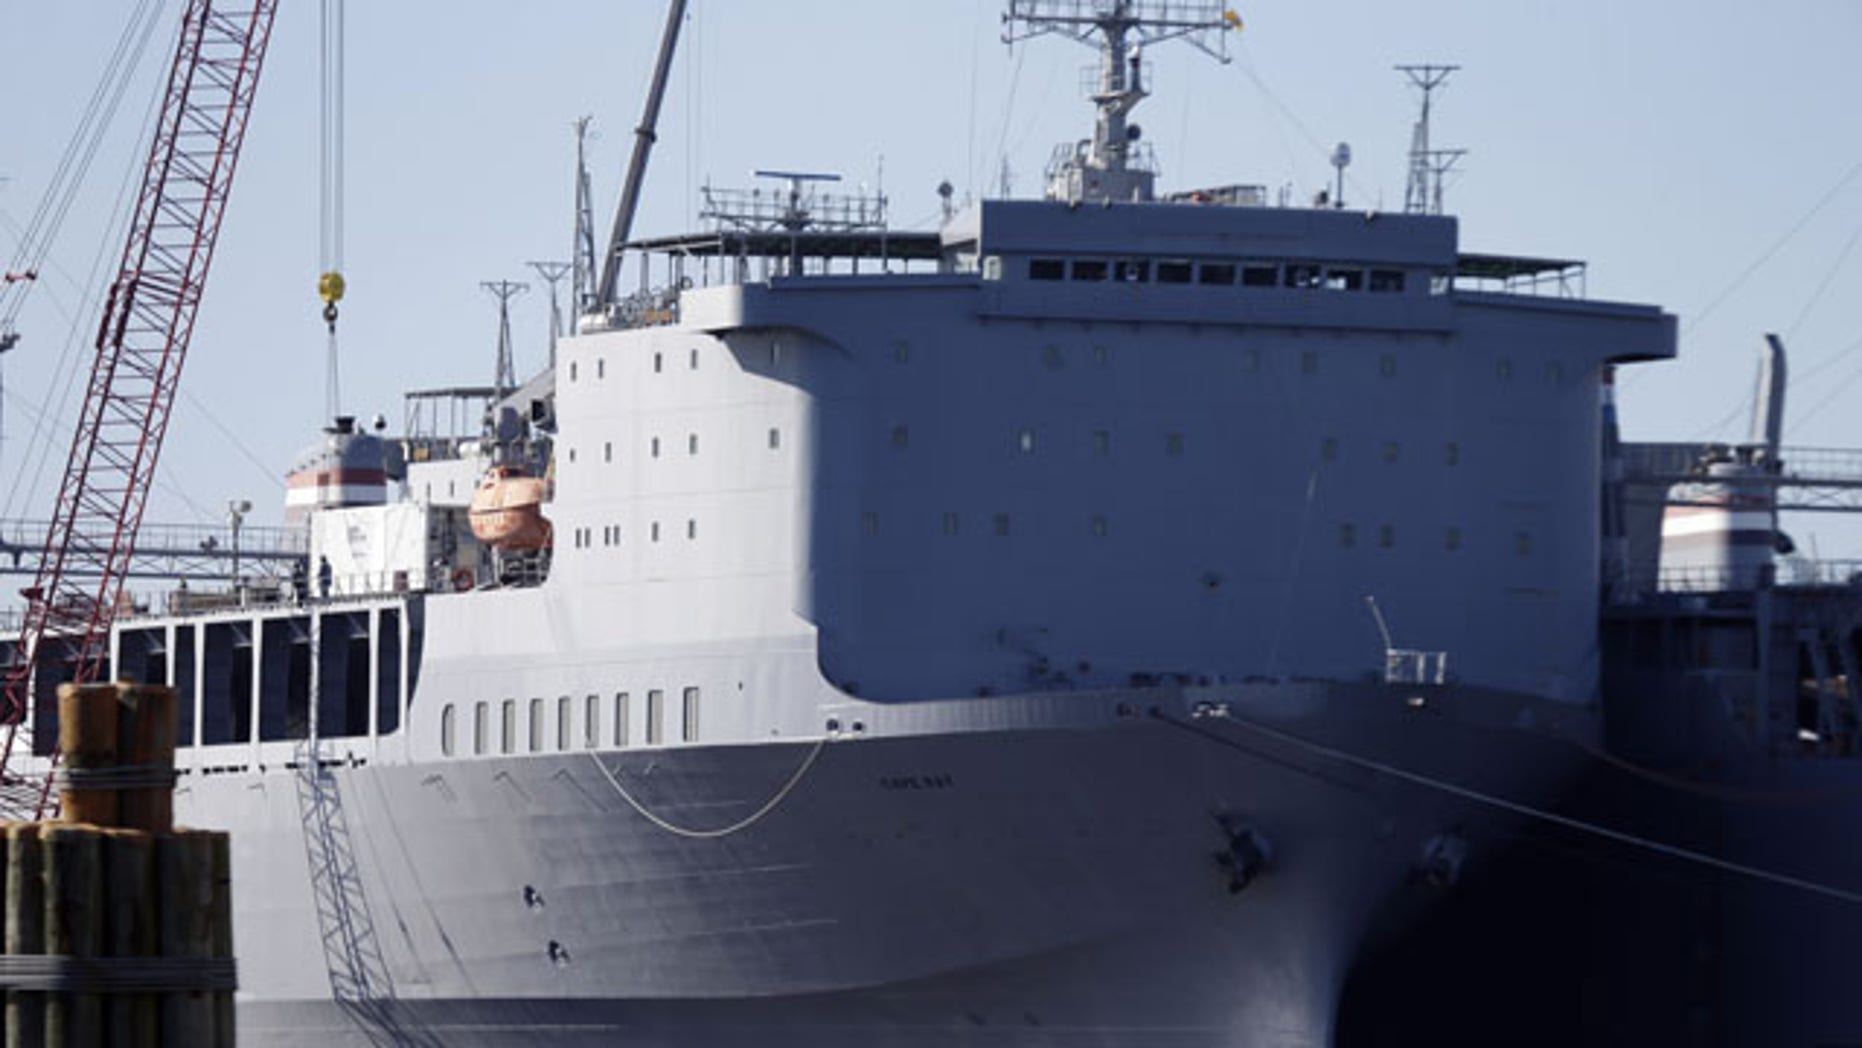 December 19, 2013: Workers unload equipment from the MV Cape Ray, part of the U.S. maritime reserve fleet in Portsmouth, Va. The U.S. ship will serve as the linchpin for the destruction of Syria's most toxic chemical weapons (AP Photo)